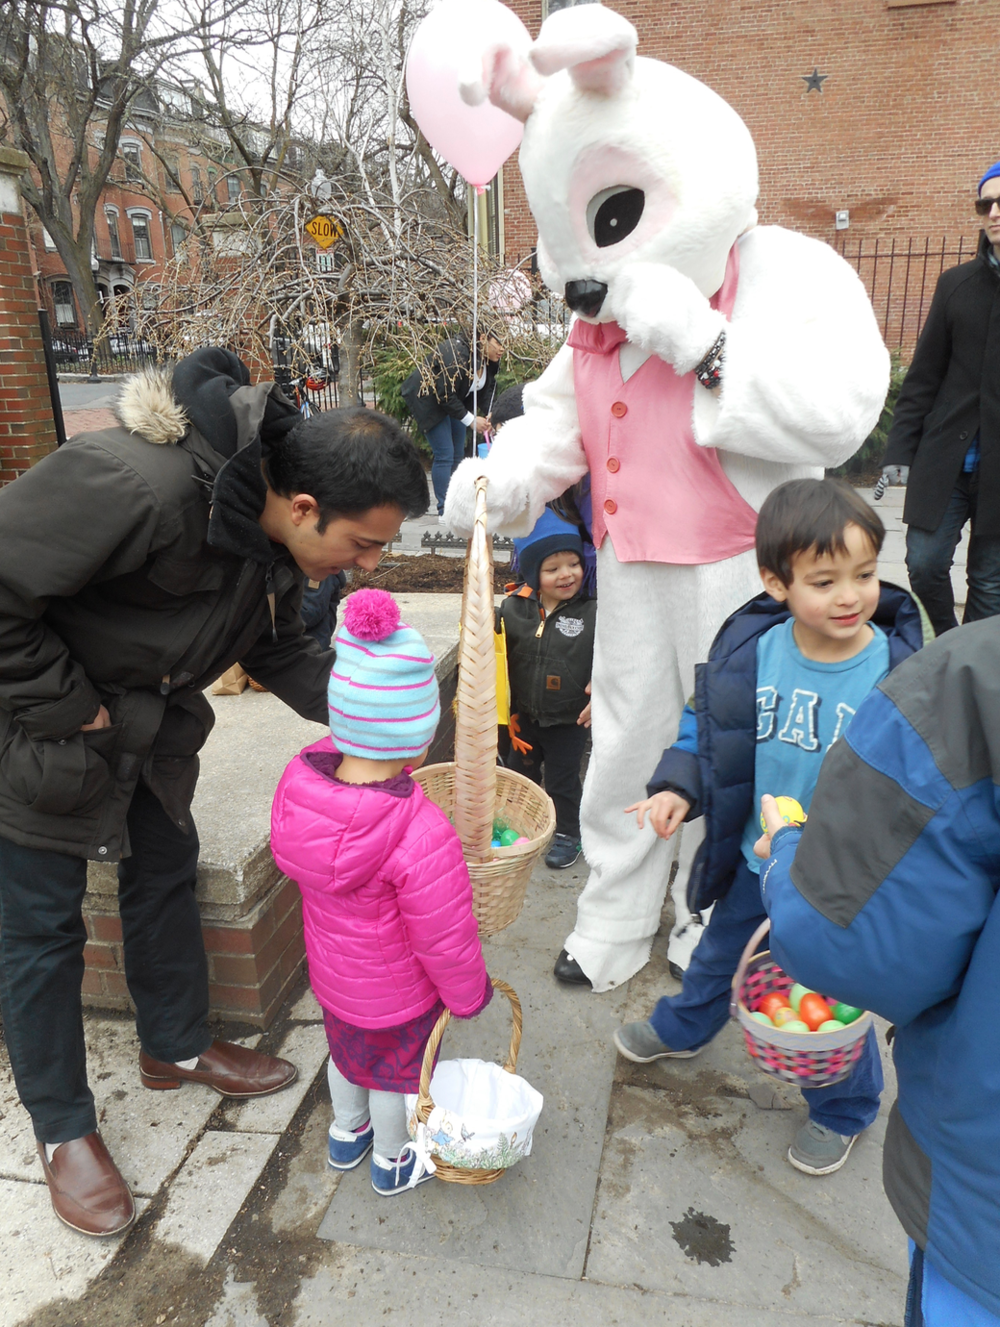 The iconic first outdoor event of spring: the FOSEL Easter Egg Hunt in Library Park